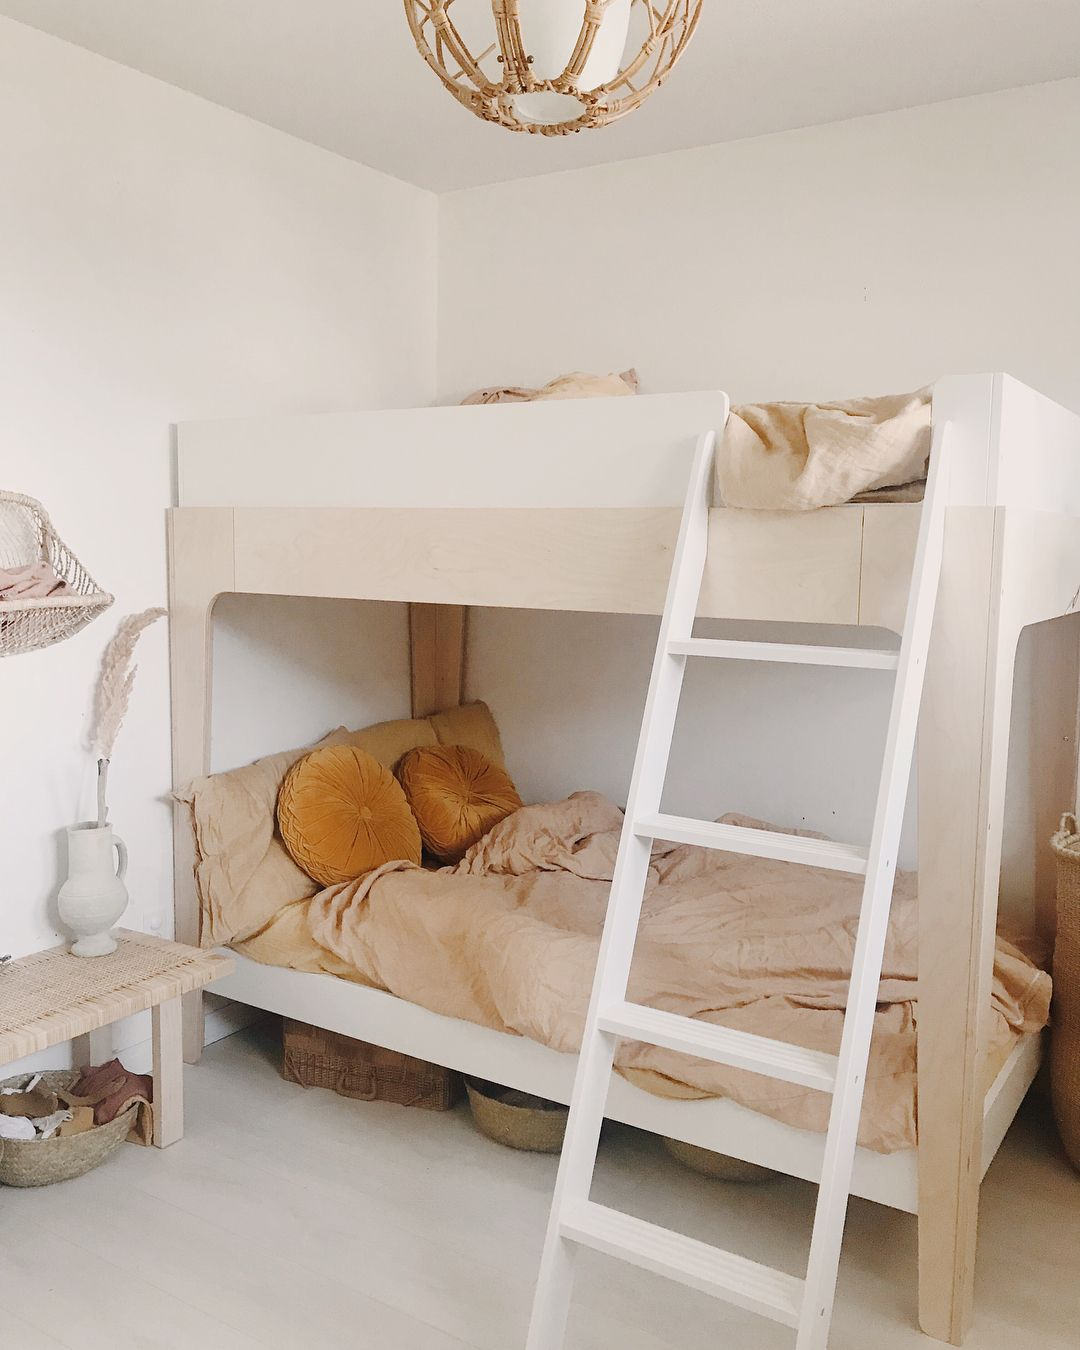 Happy That Oeufnyc Made A Bunk Too Heavy For Me Too Ever Move On